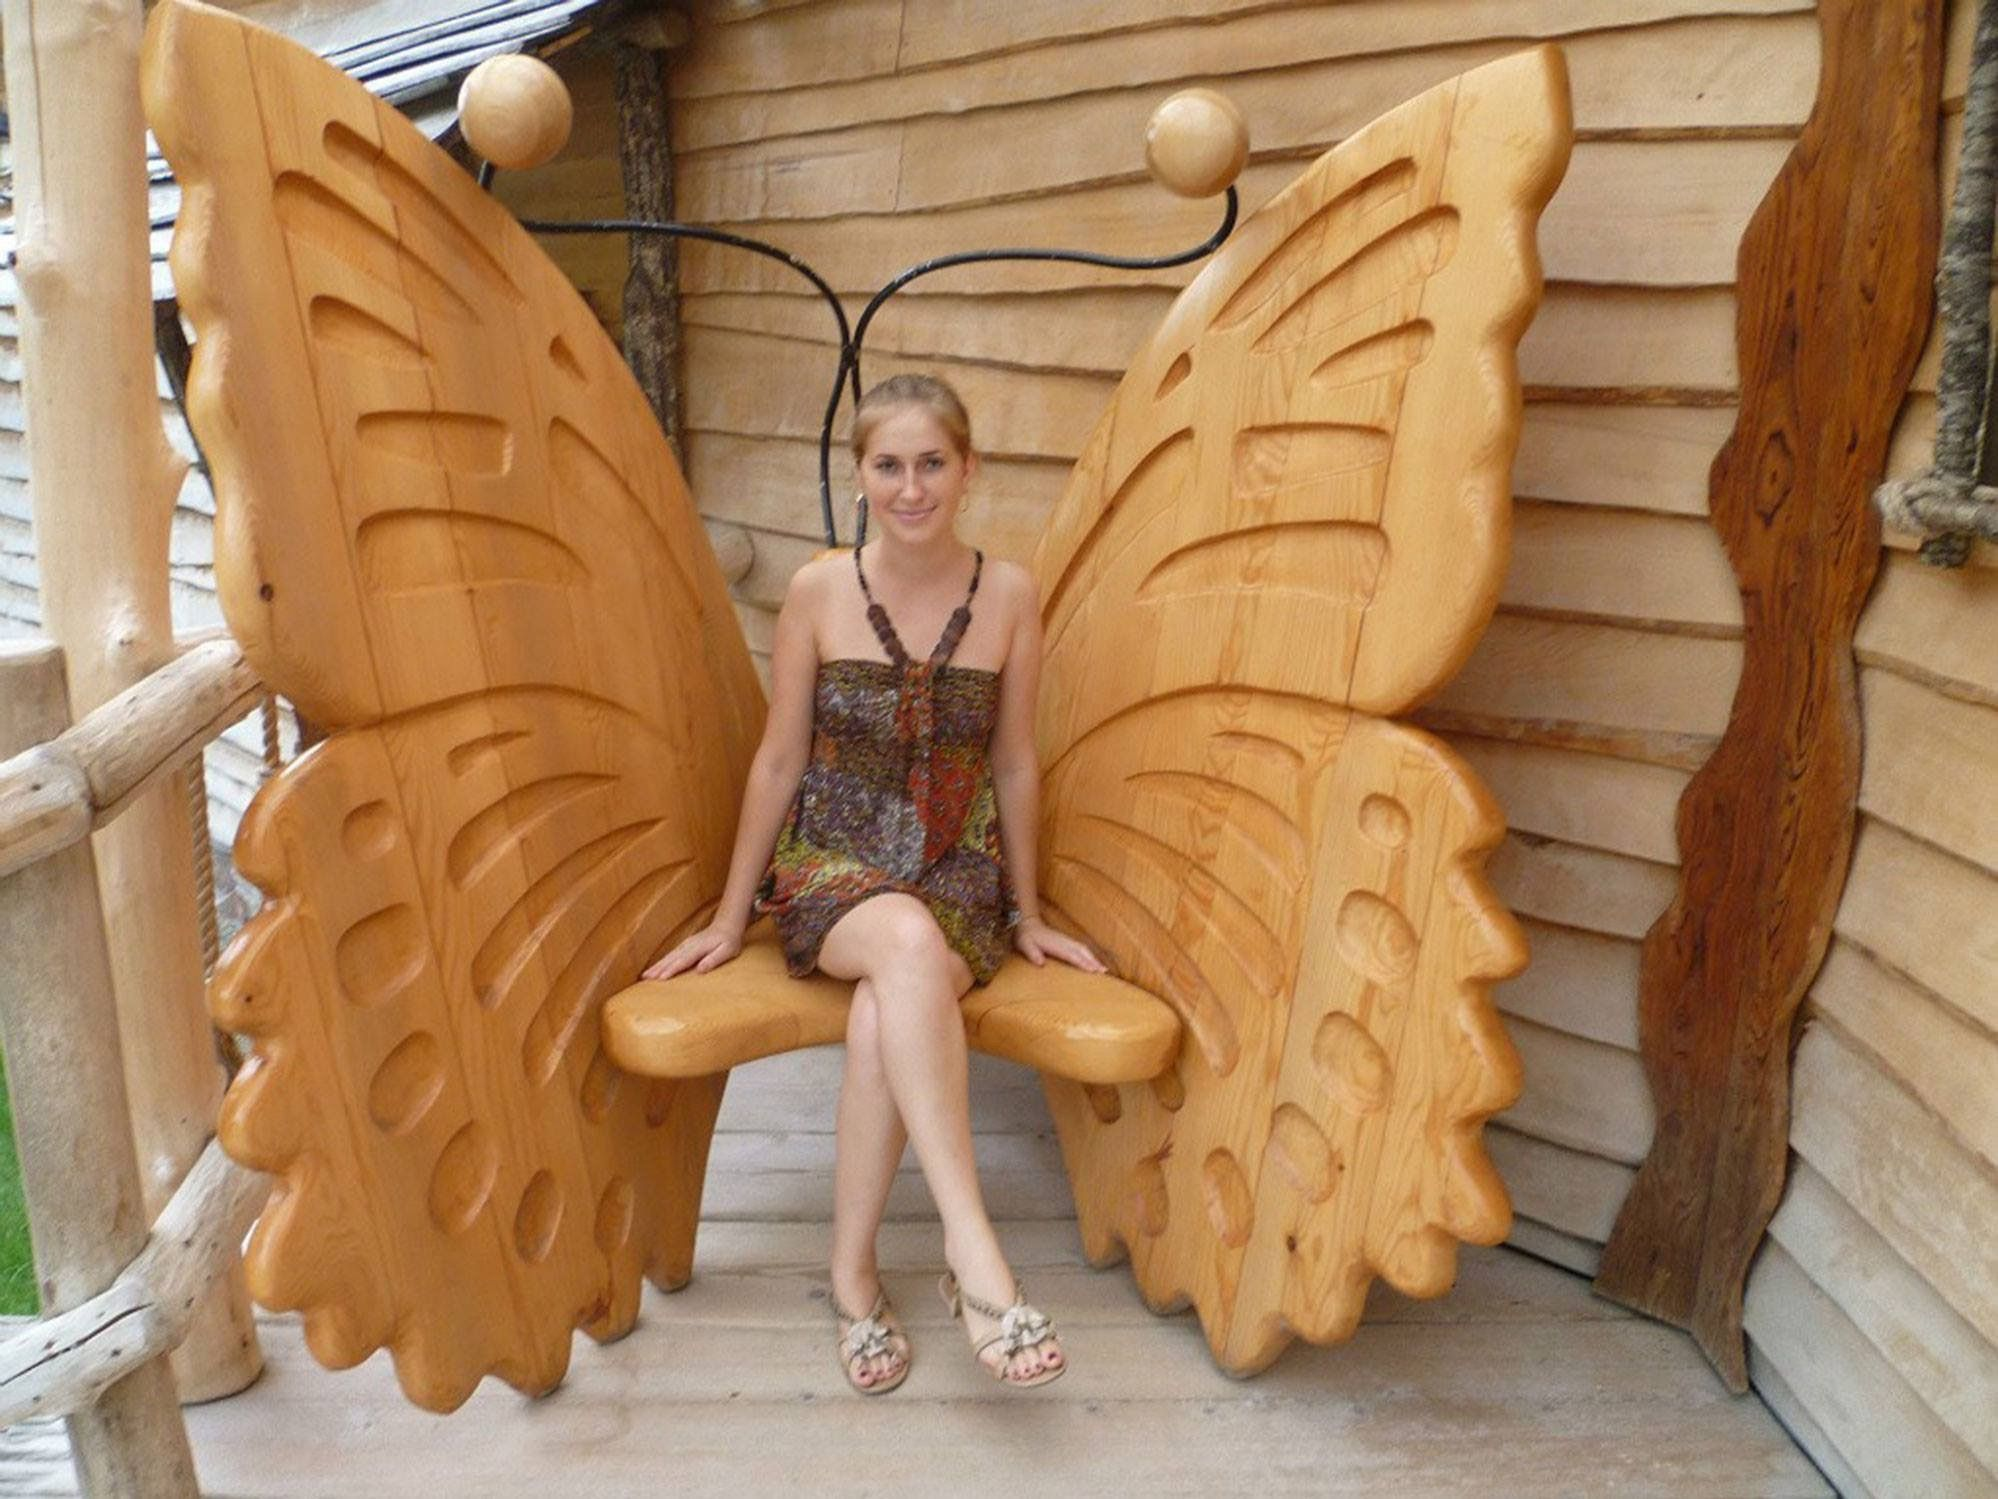 Carved wooden butterfly chair | DIY Home Projects | Wood ...